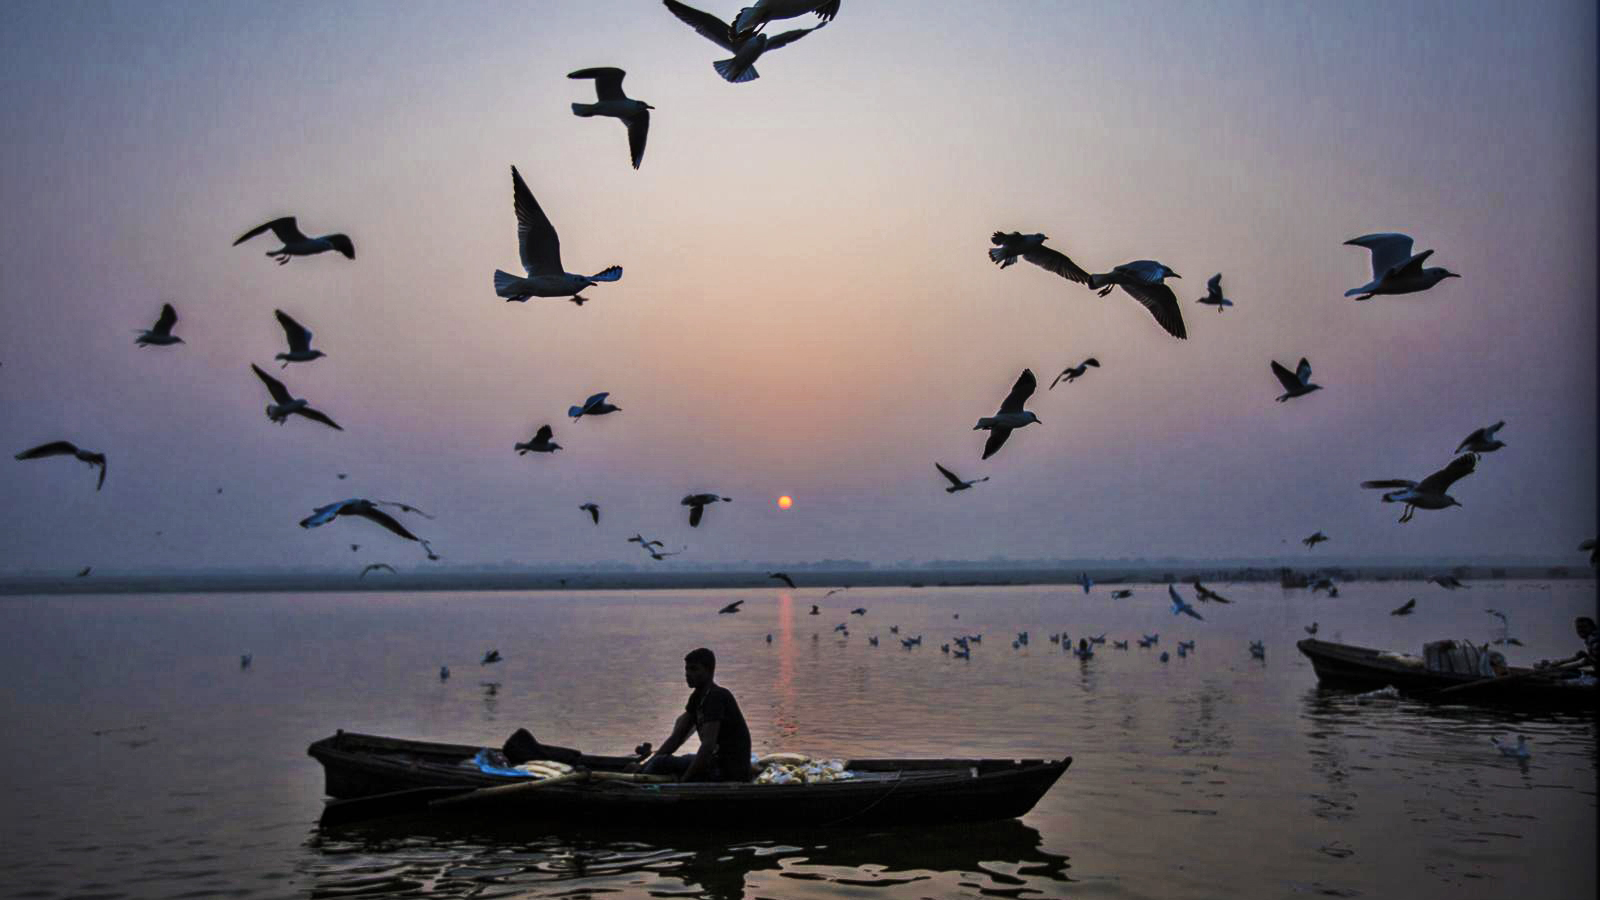 Indien Kulturreise Ganges Flusskreuzfahrt mit National Geographic Journeys traveljunkies